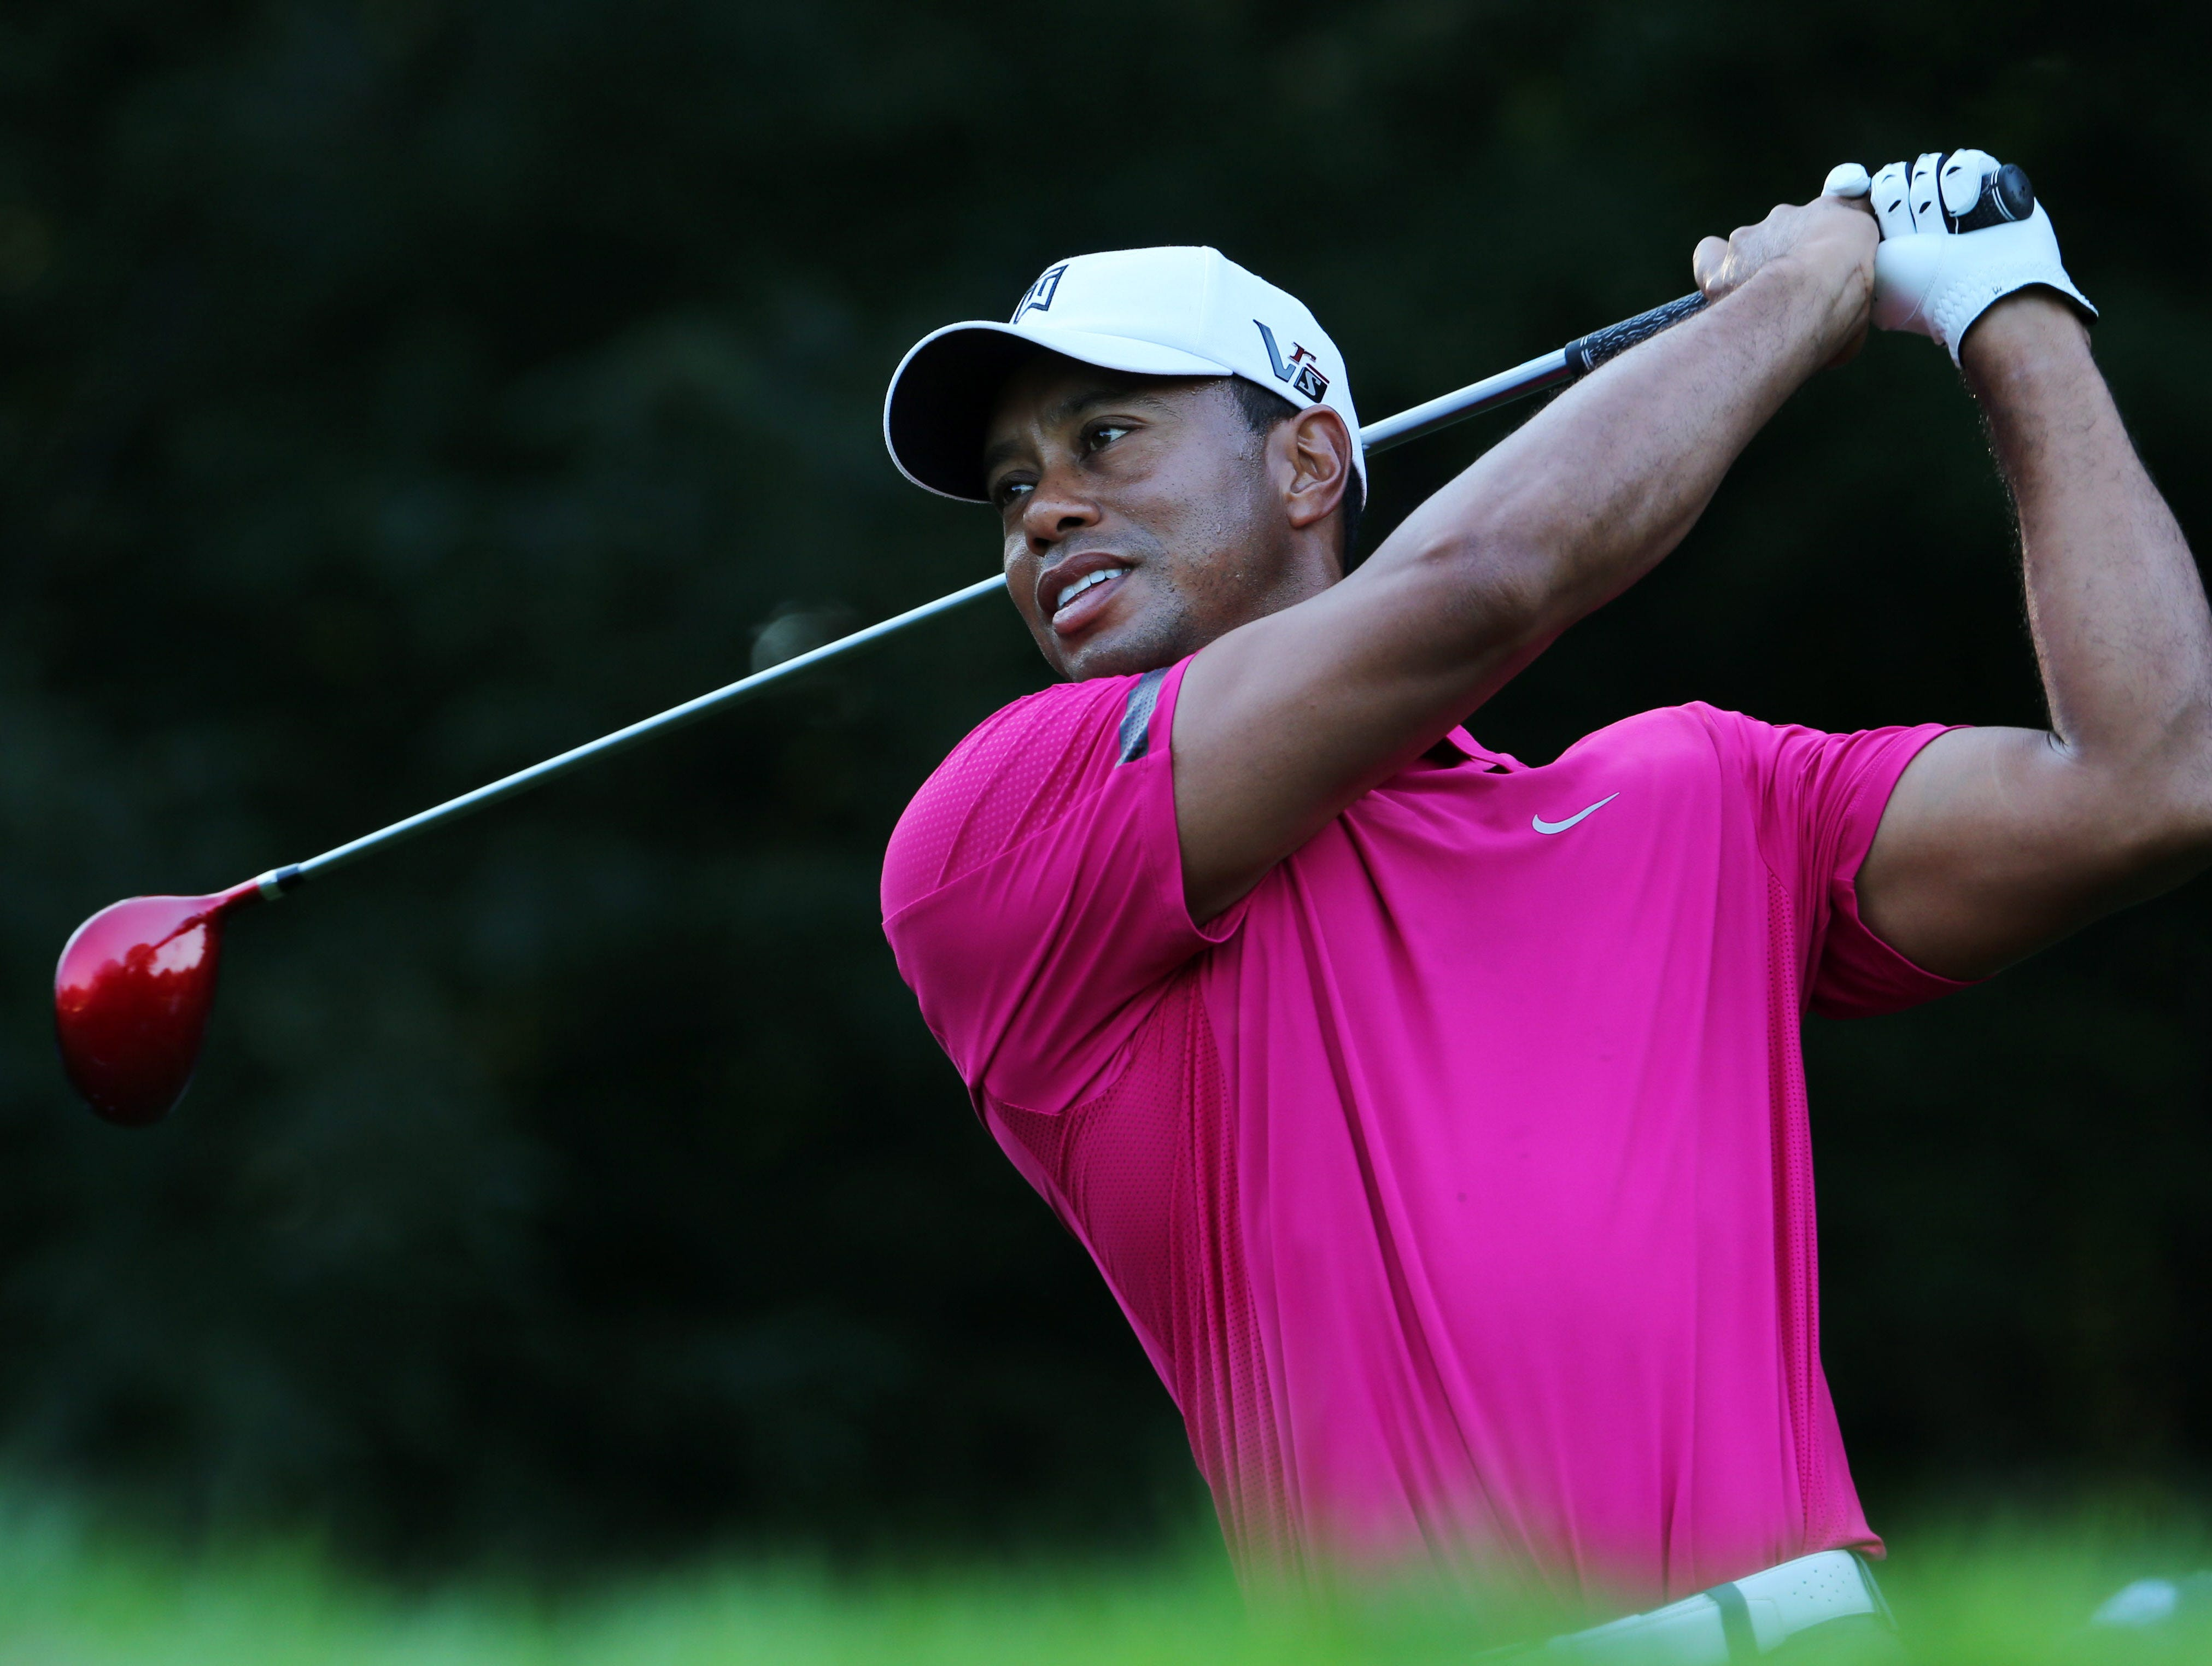 Tiger Woods tees off on the 4th hole during the practice round of the 95th PGA Championship at Oak Hill Country Club.